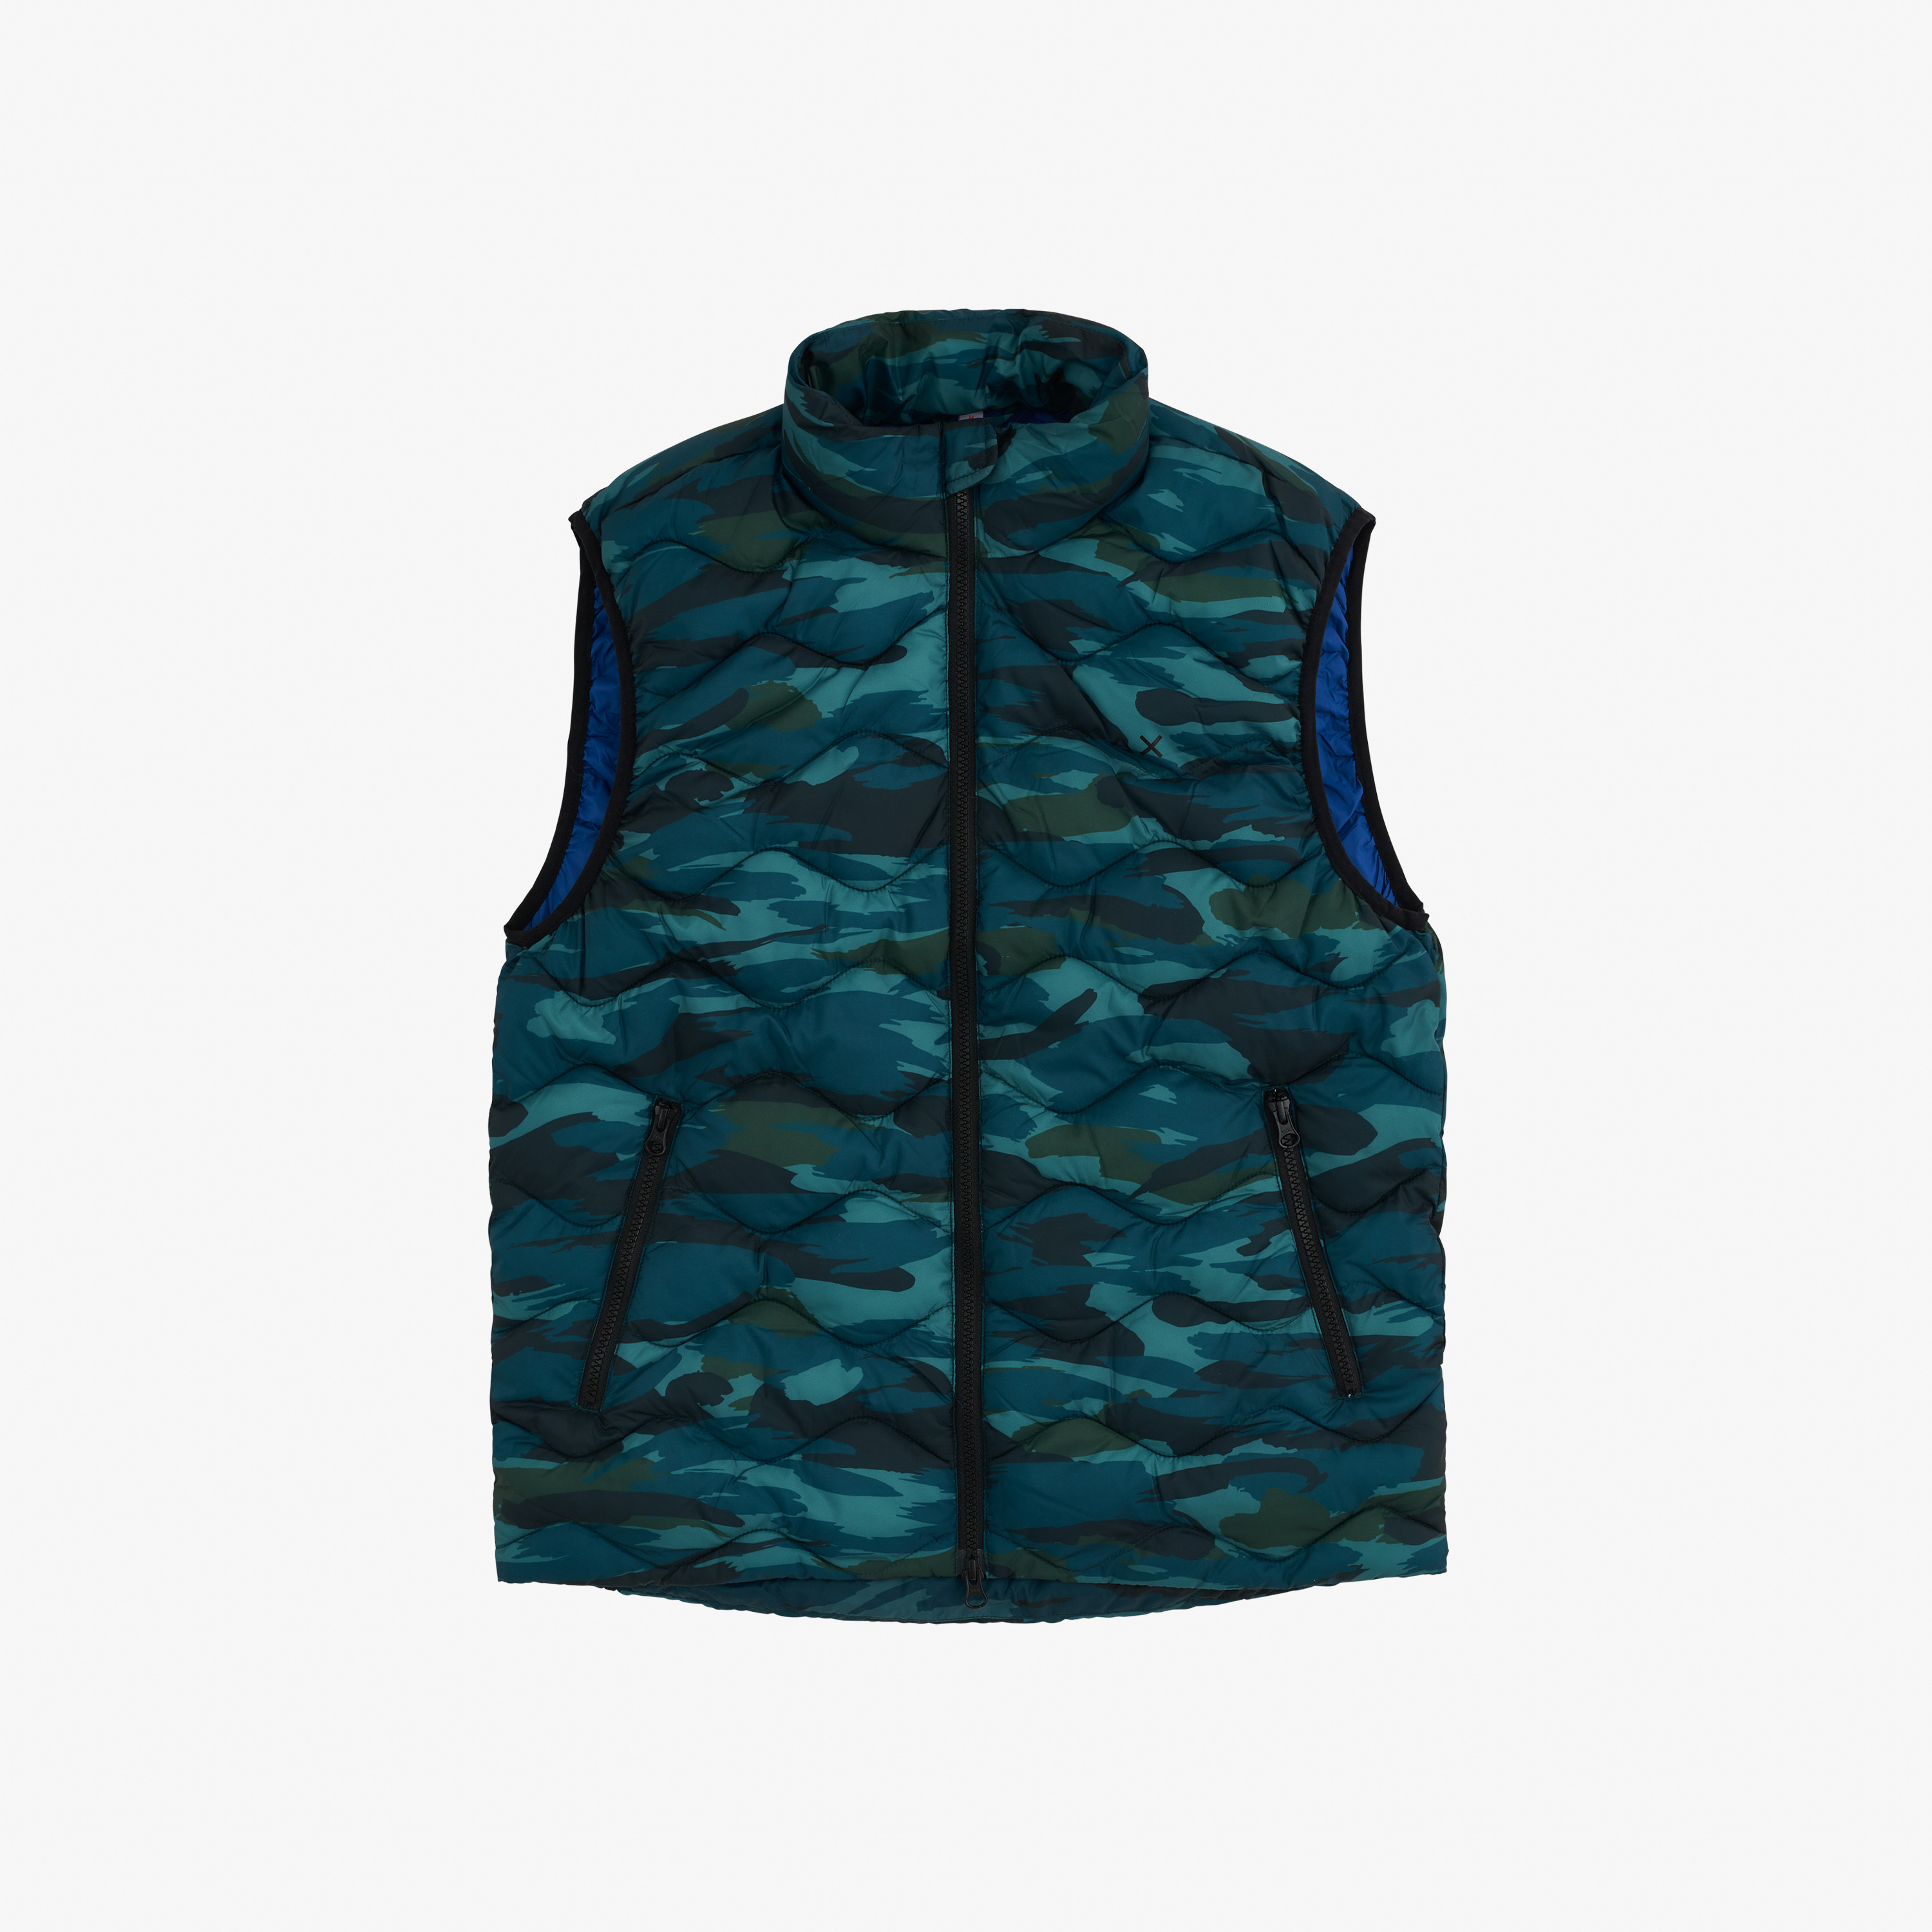 RAIN JACKET NO SLV NEW CAMOUFLAGE